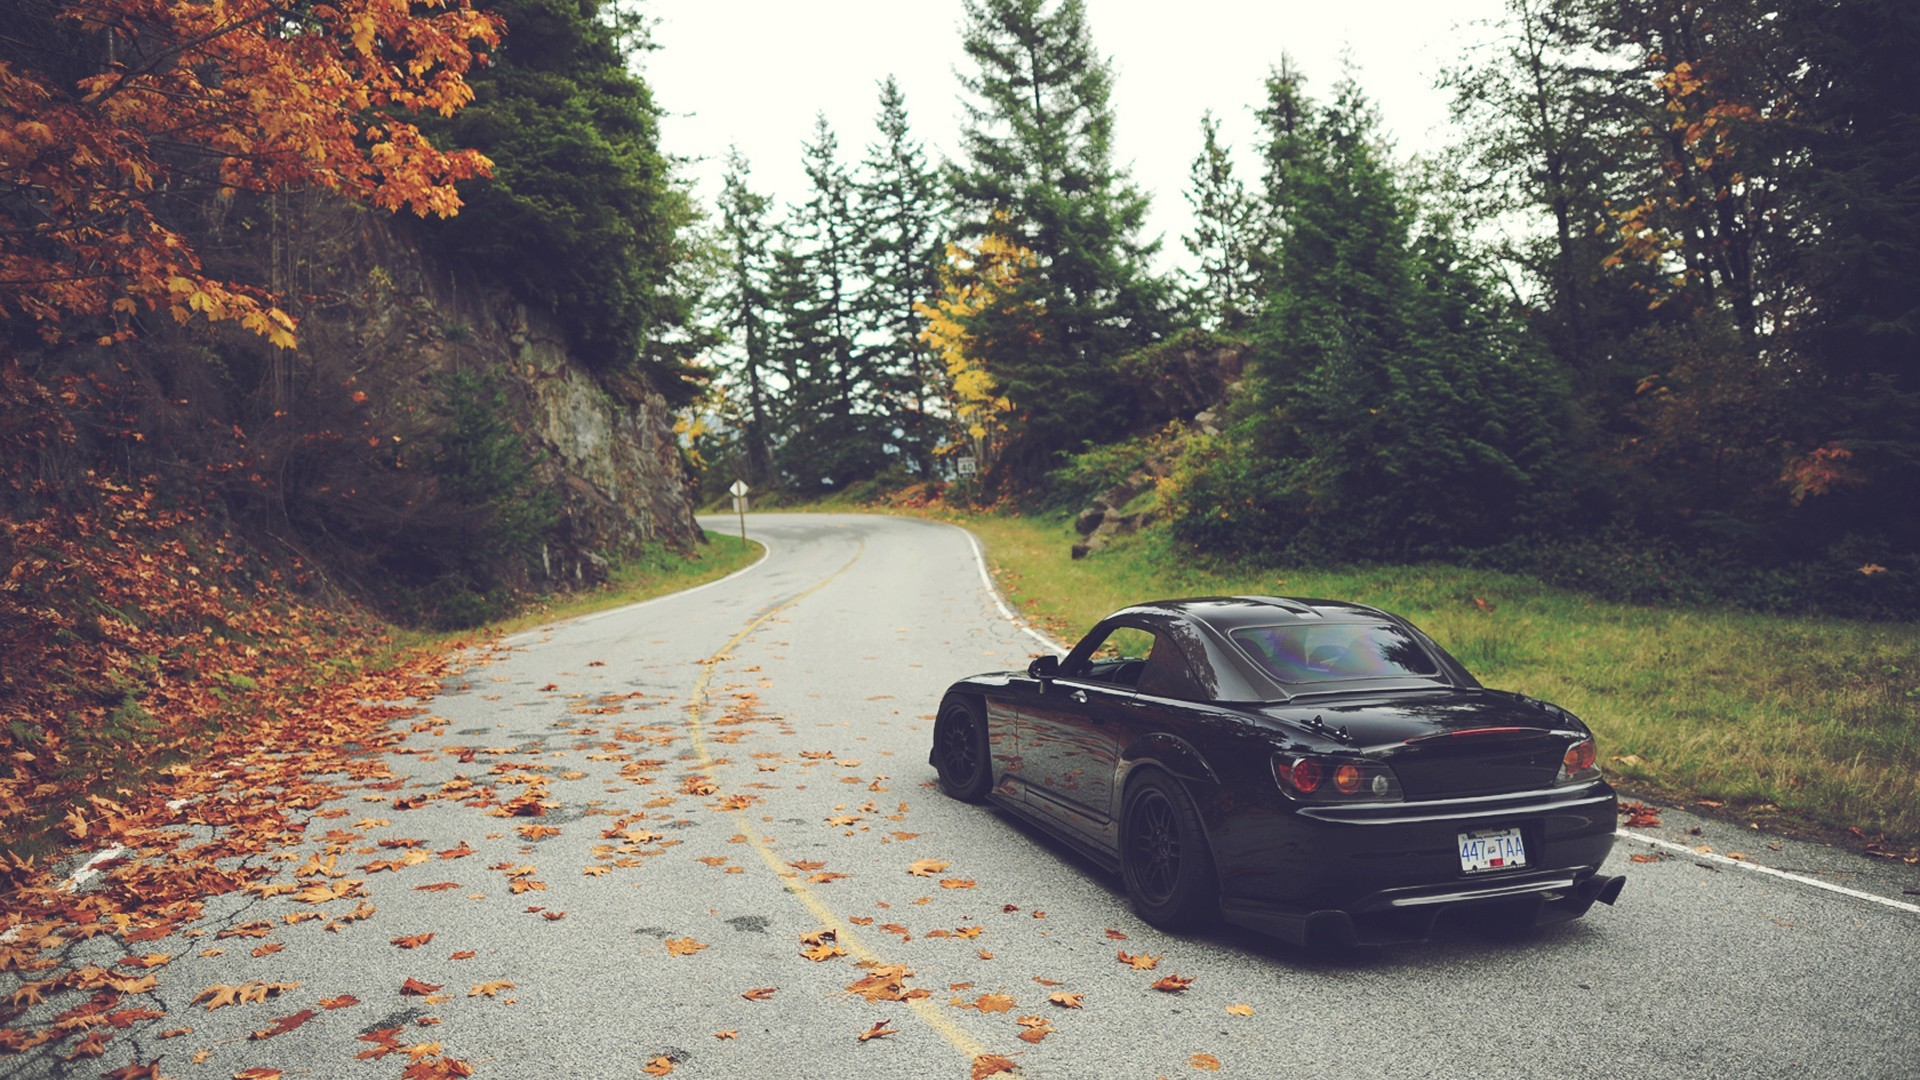 Honda S2000 HD Cars 4k Wallpapers Images Backgrounds Photos And